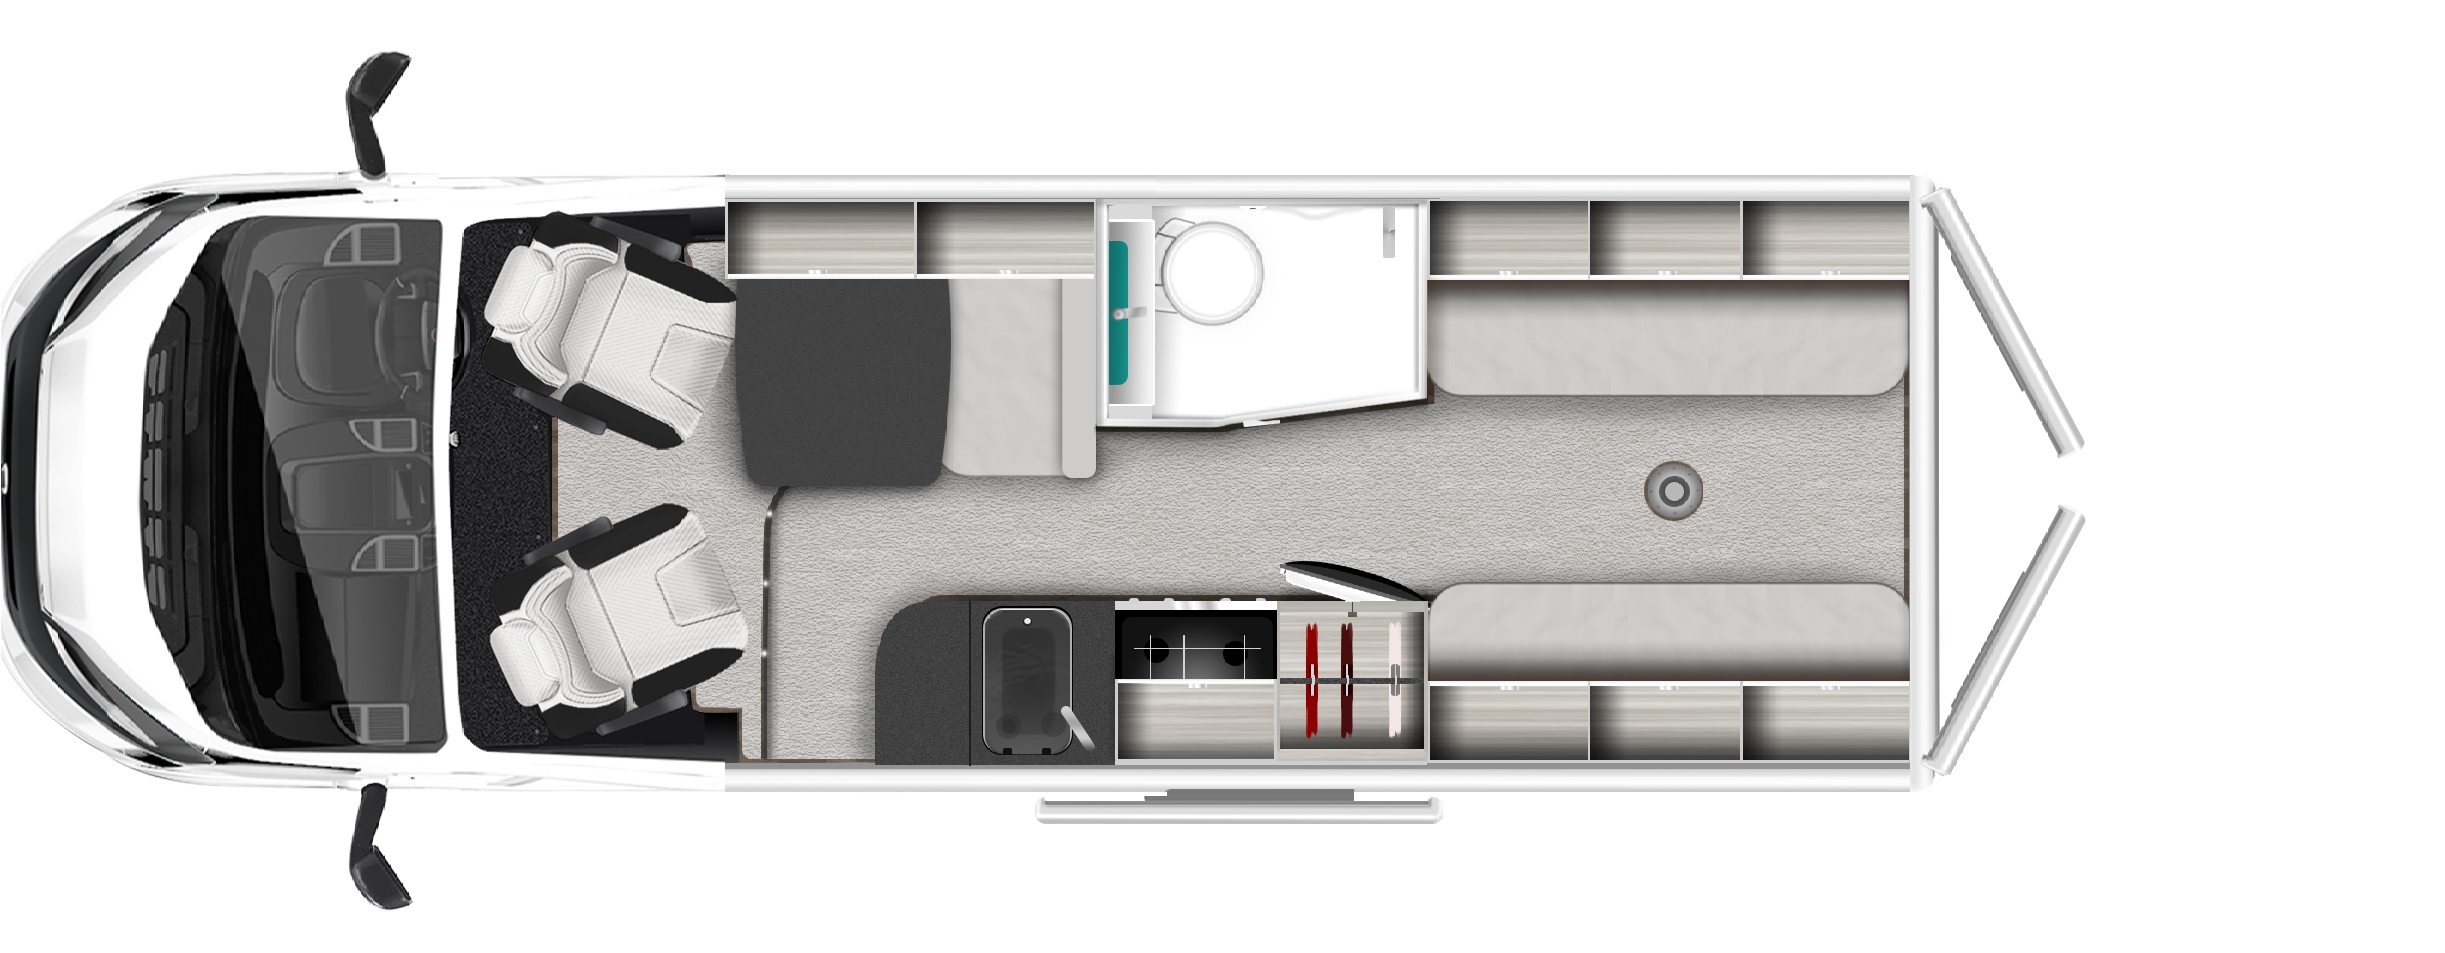 2020 Roller Team Toleno S New Motorhome layout